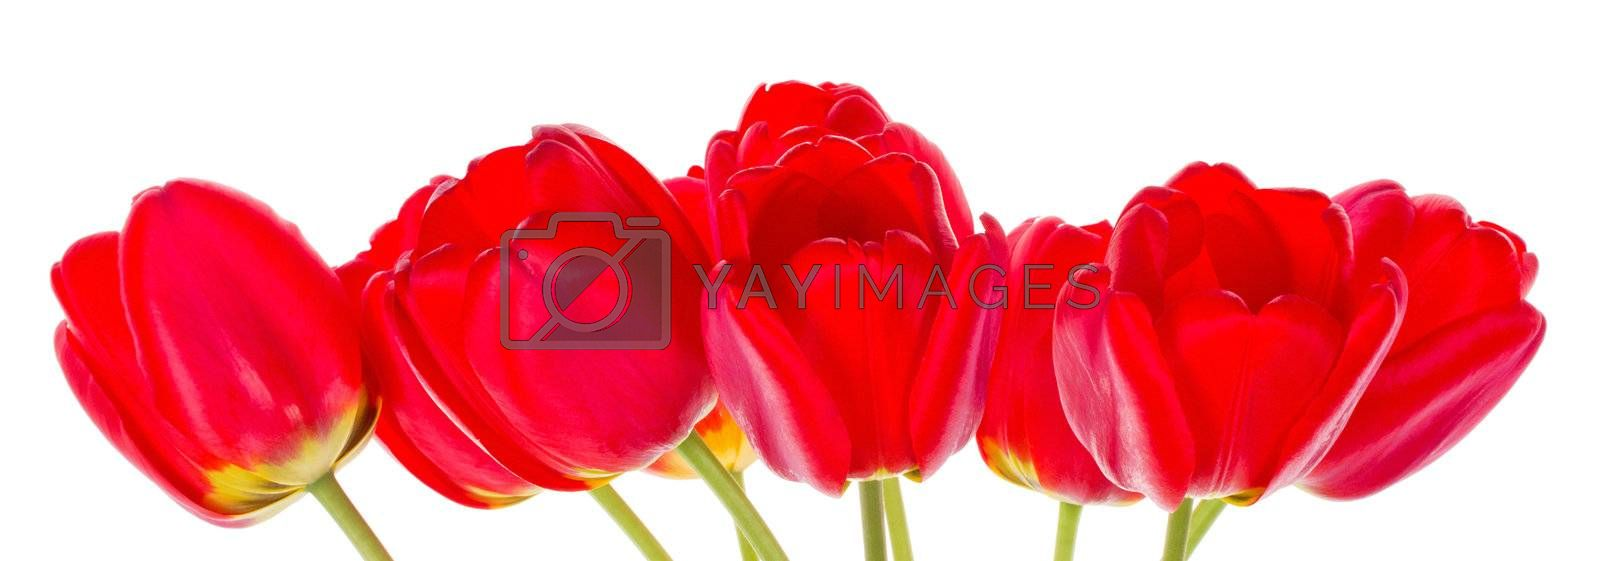 close-up red tulips, isolated on white